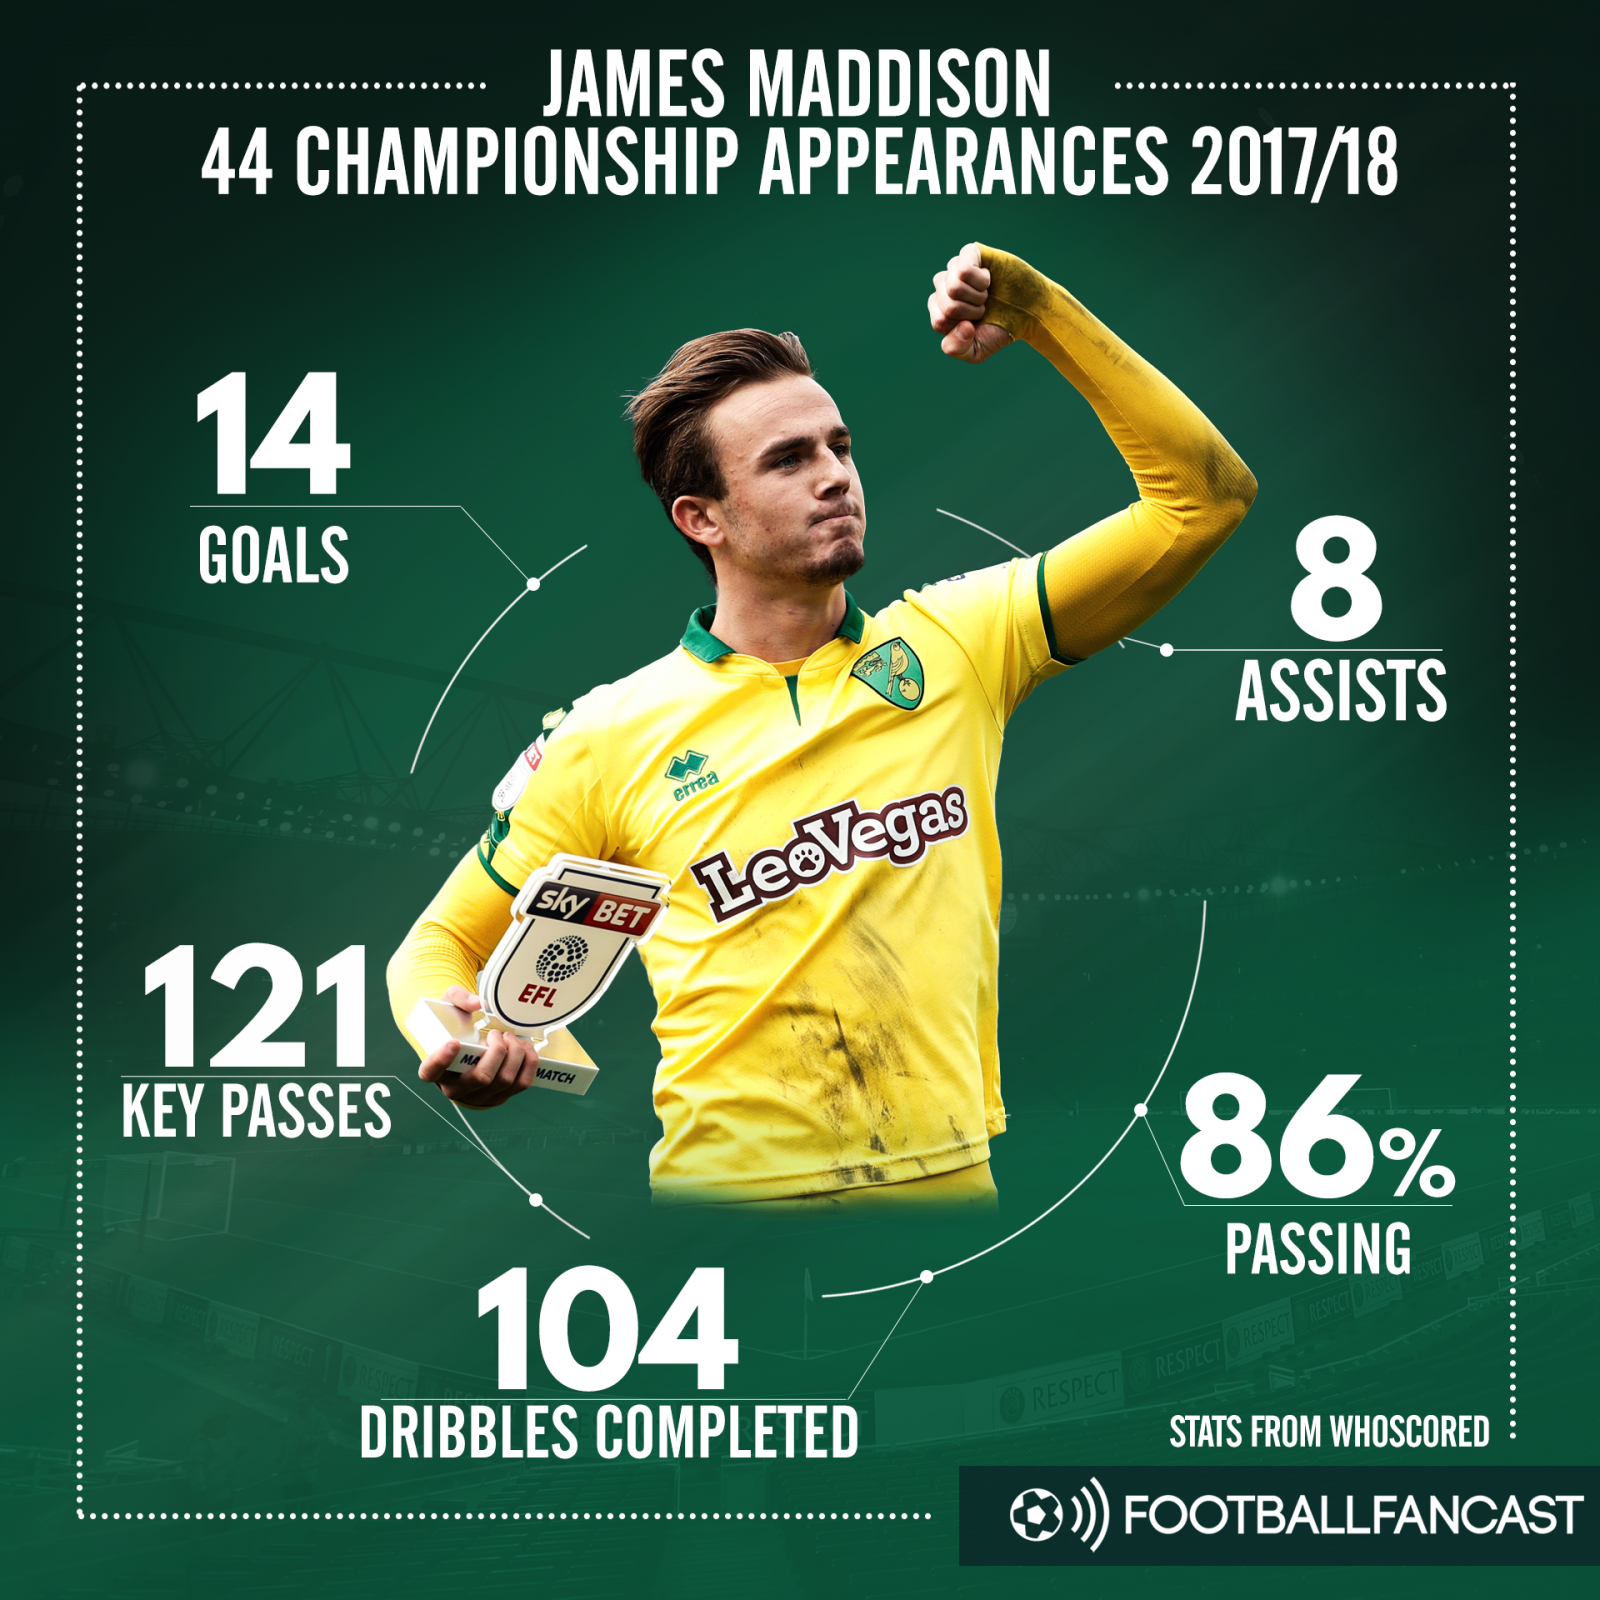 James Maddison's stats for Norwich City in the Championship